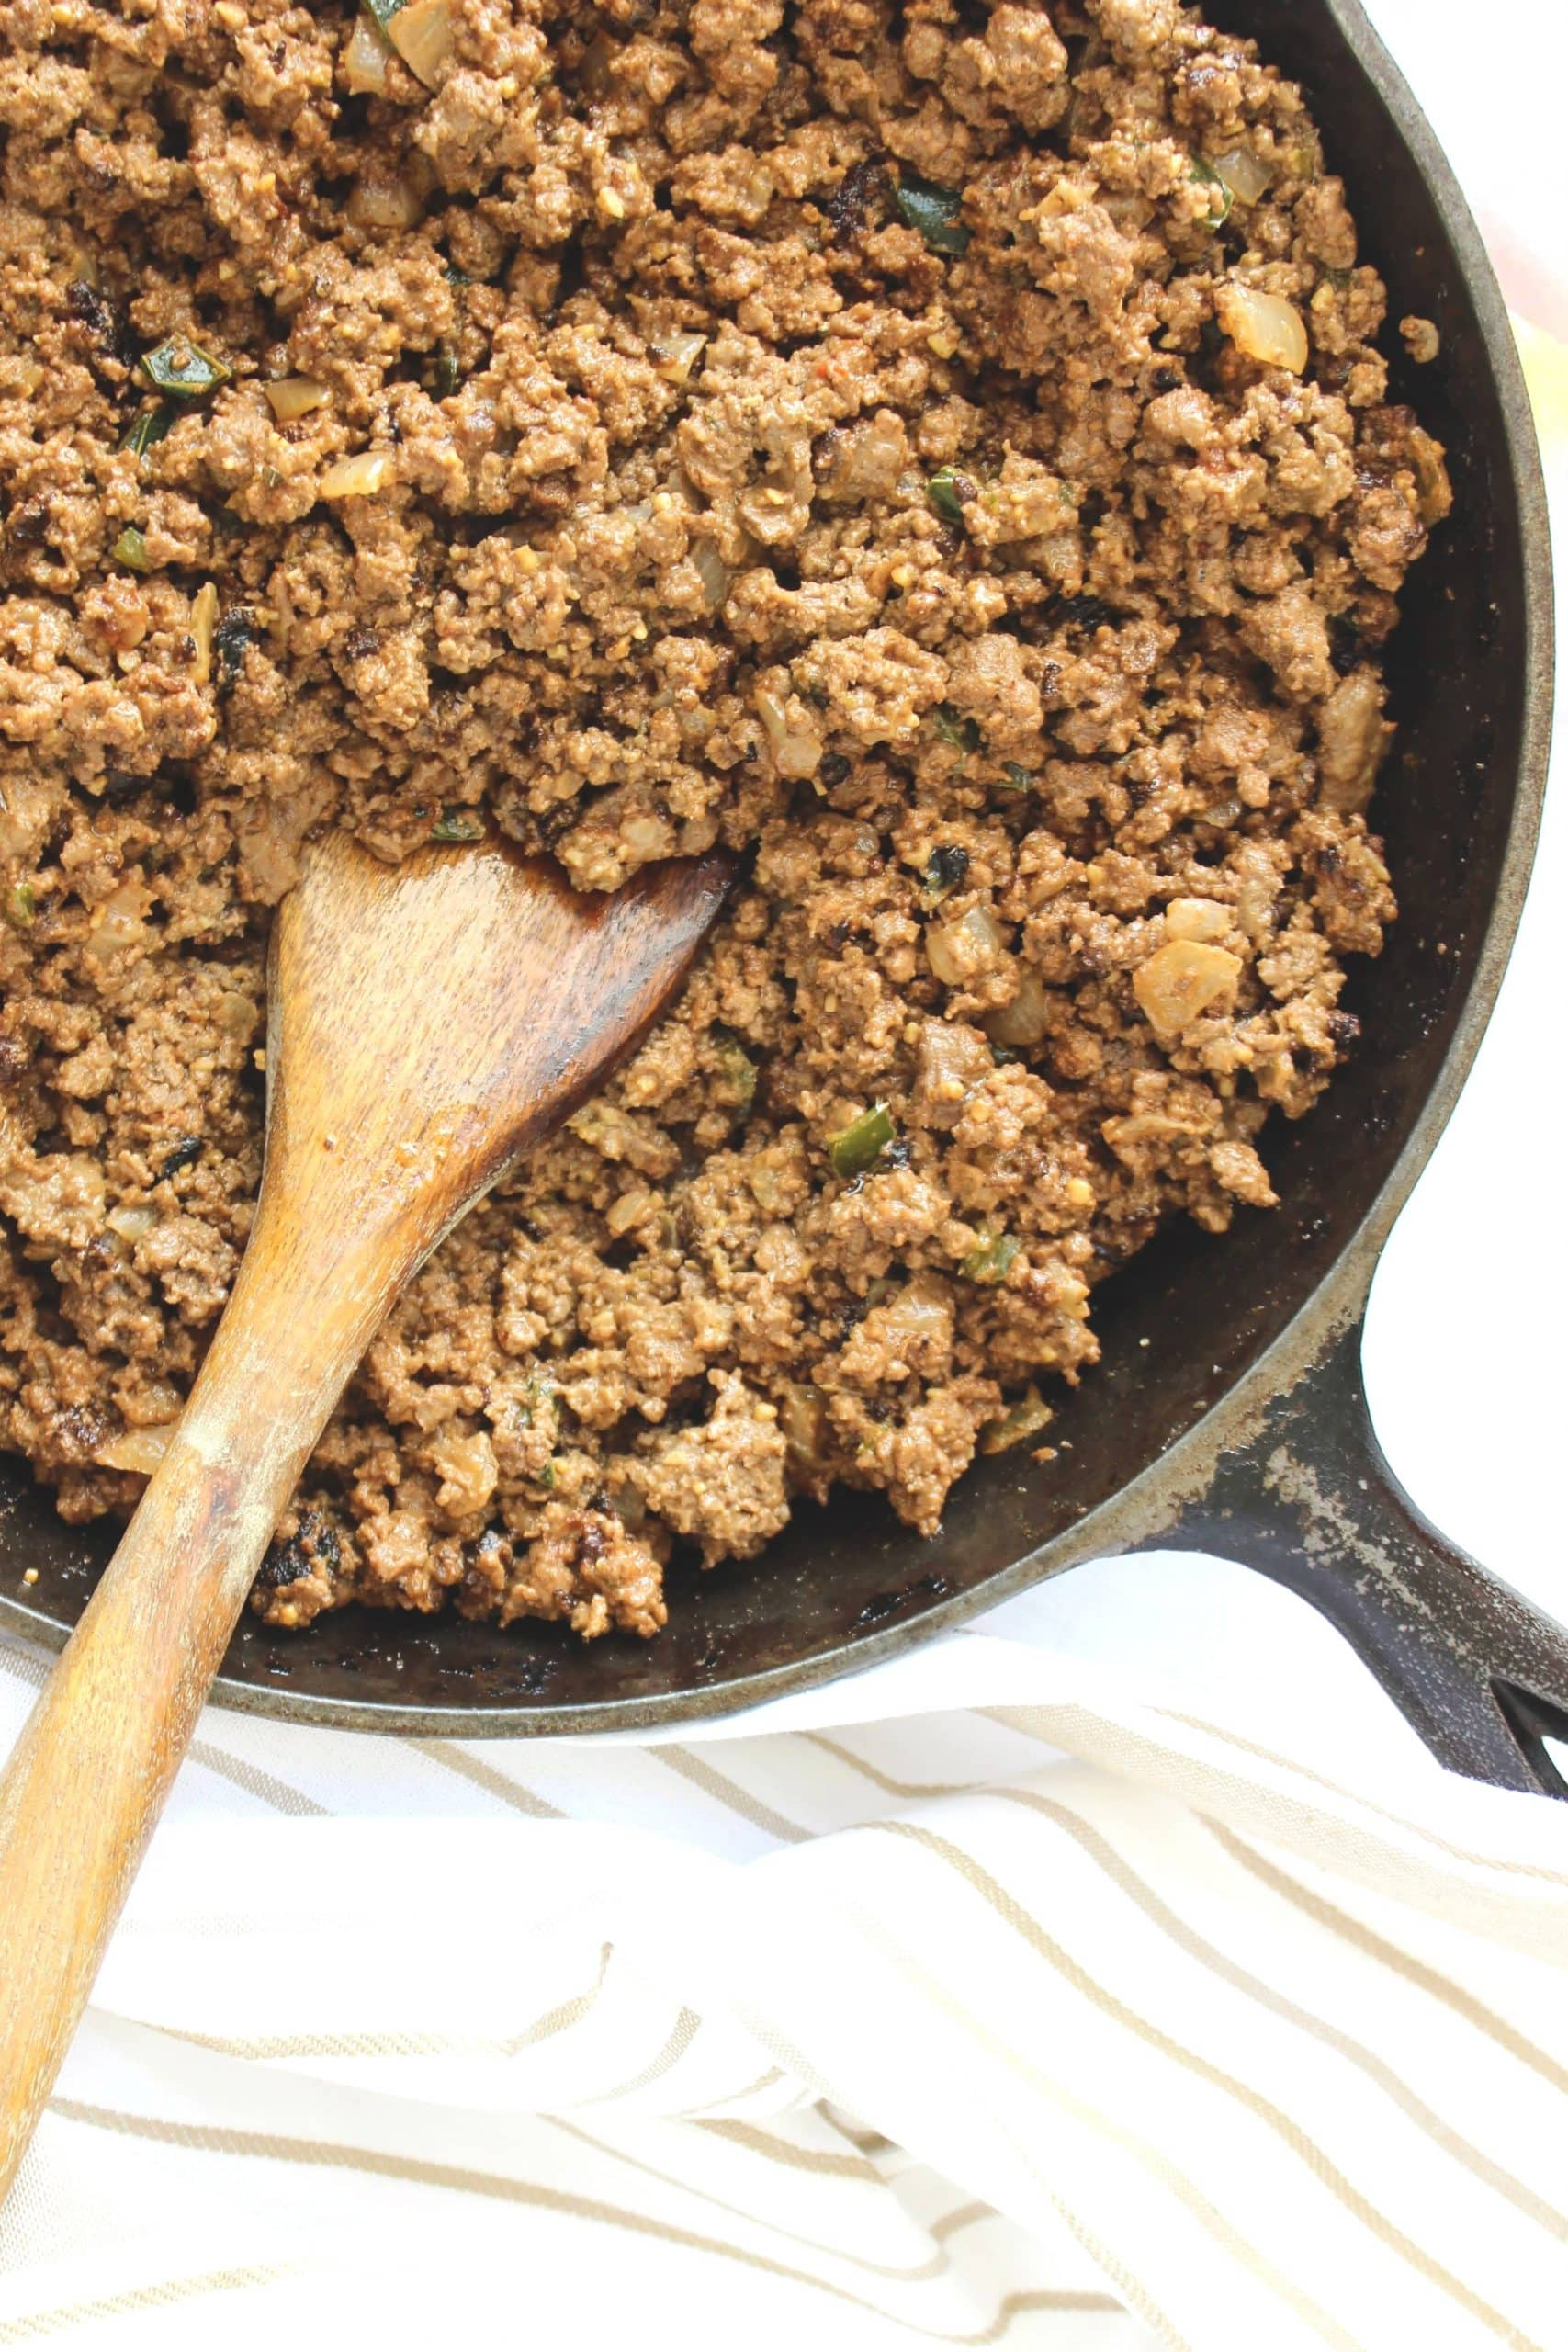 Keto Super Taco Meat for keto diet tacos protein option